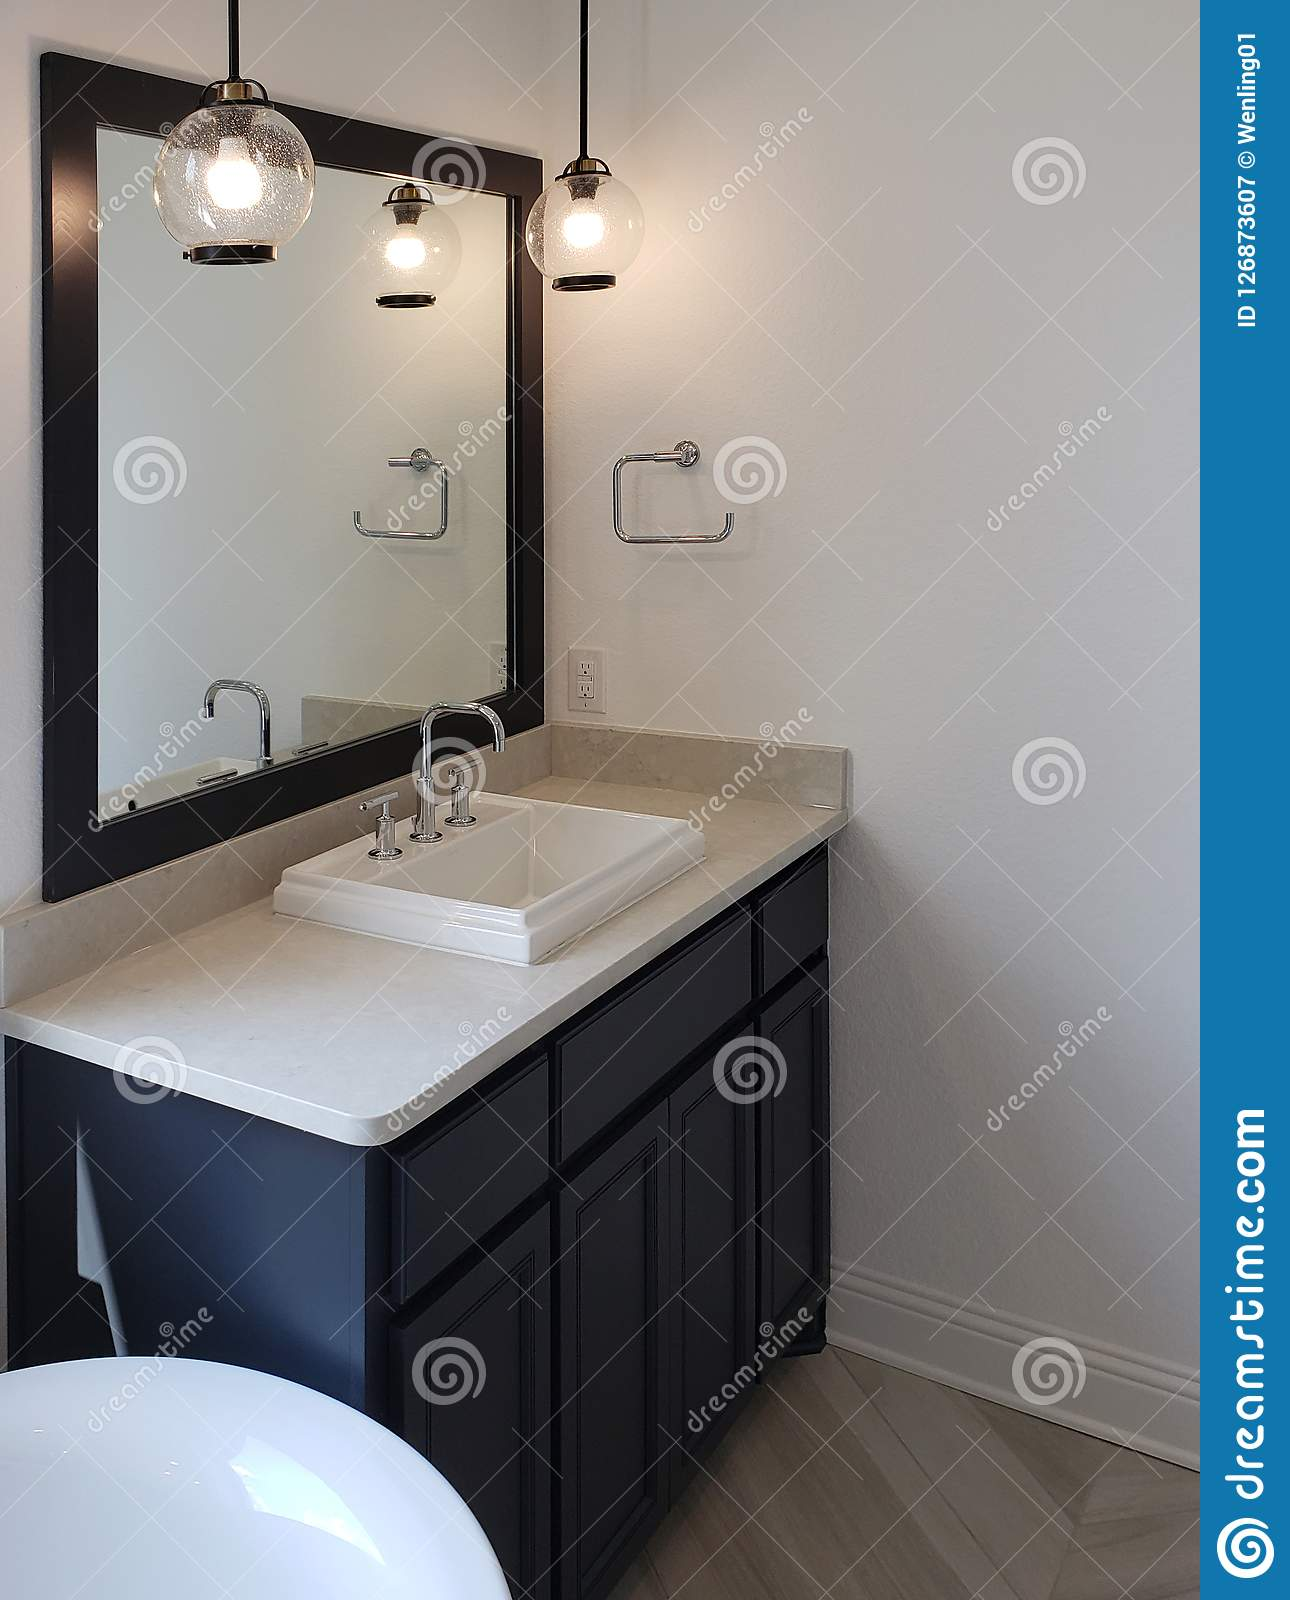 Cabinet D Architecte Nice sink and mirror of bathroom in a new house stock image